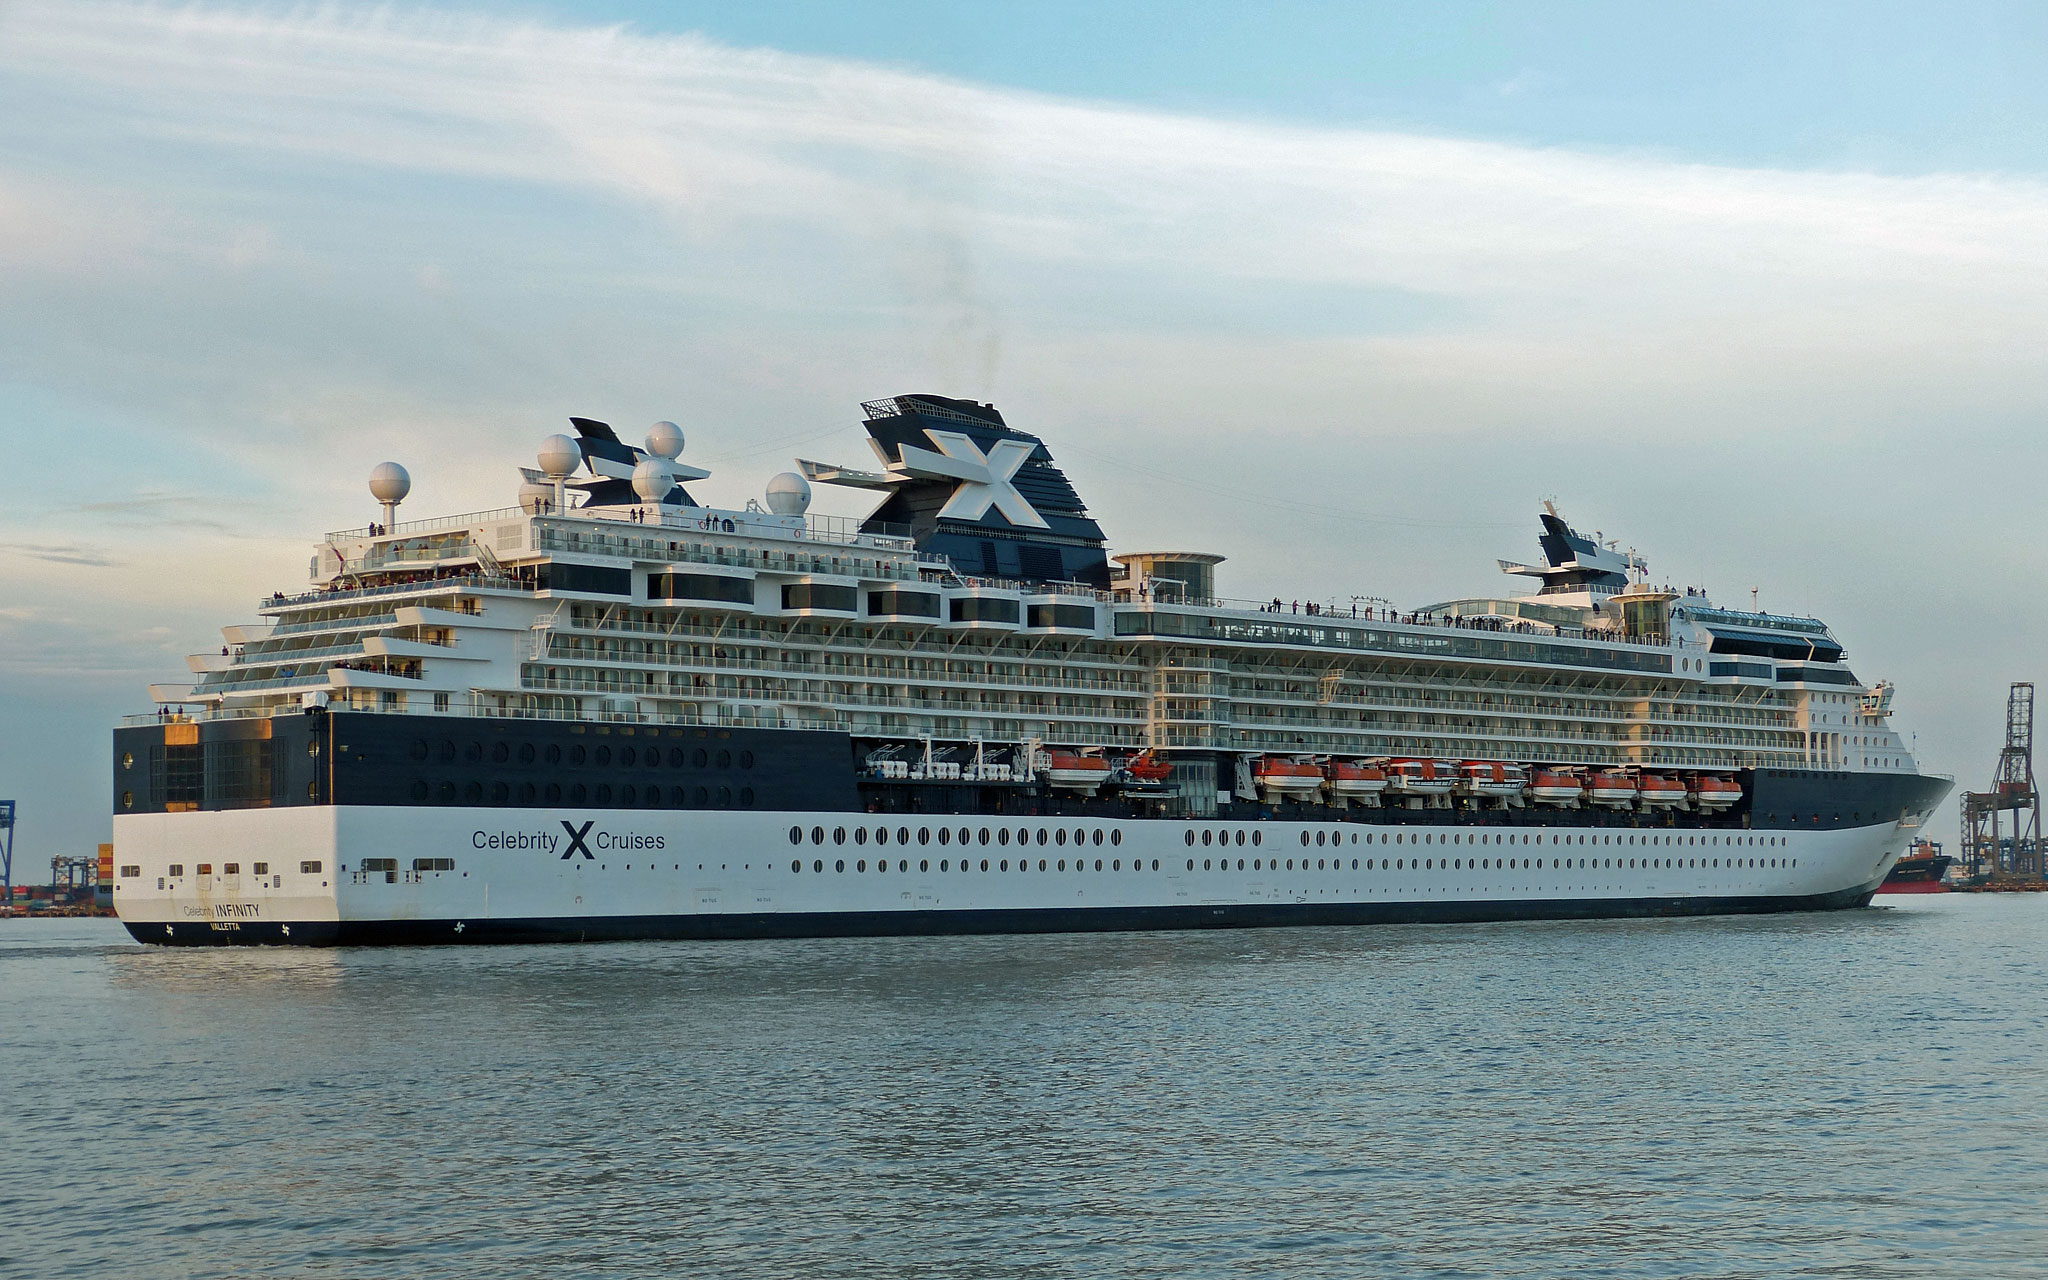 Celebrity Equinox Cruise Ship: Review, Photos & Departure ...